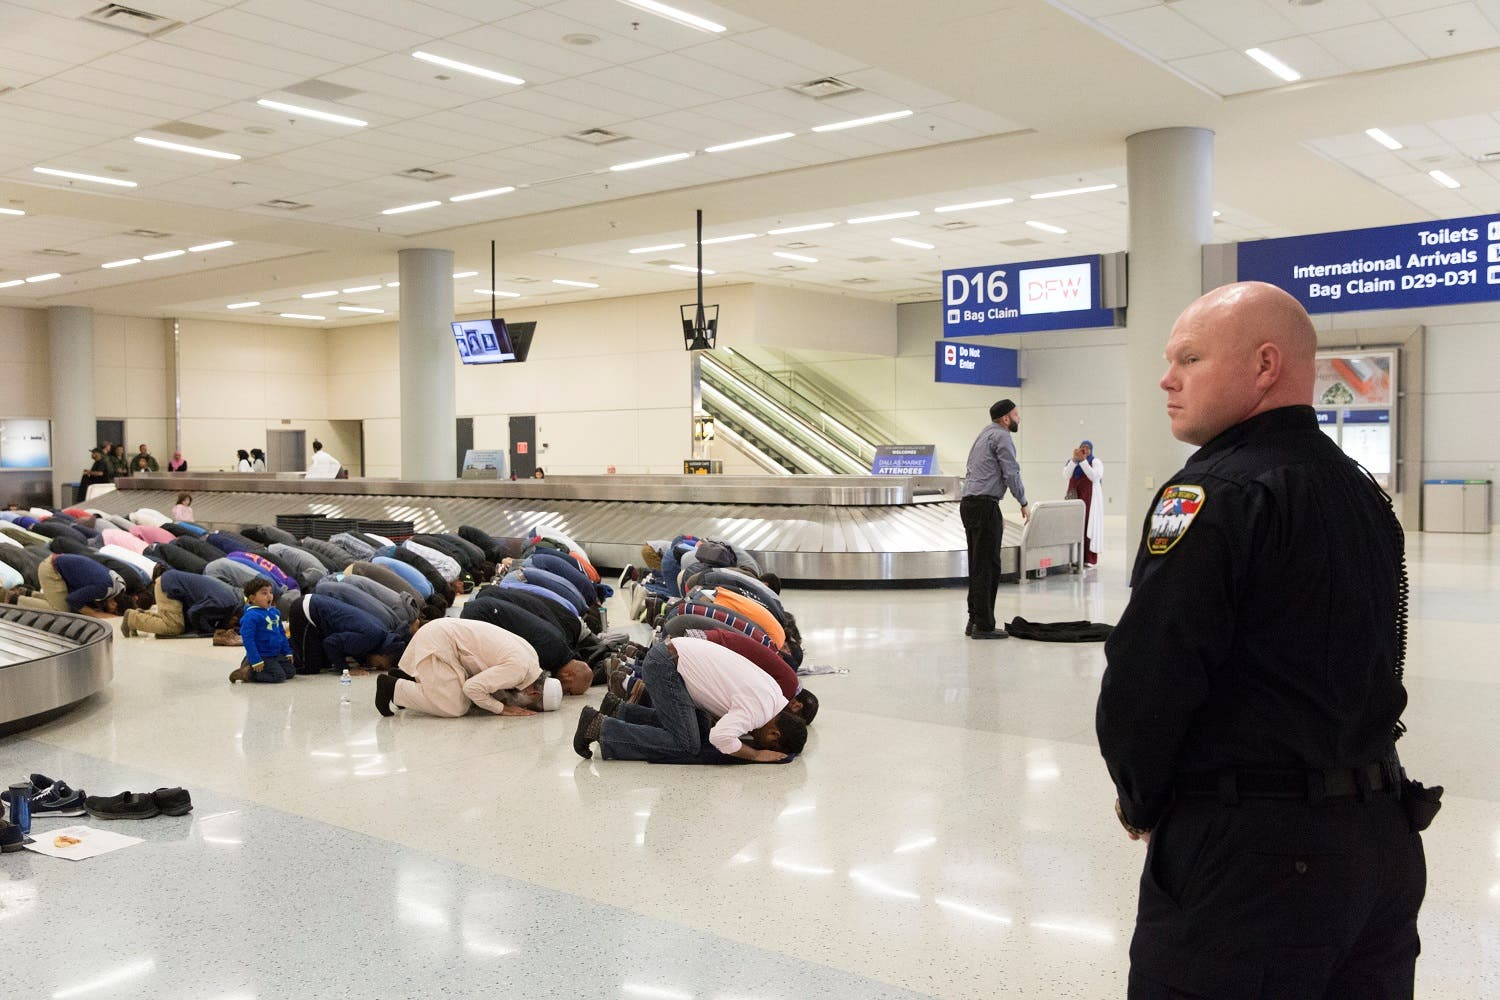 People gather to pray in baggage claim during a protest against the travel ban imposed by US President Donald Trump's executive order, at Dallas/Fort Worth International Airport in Dallas, Texas, US January 29, 2017 (Photo: Reuters/Laura Buckman)